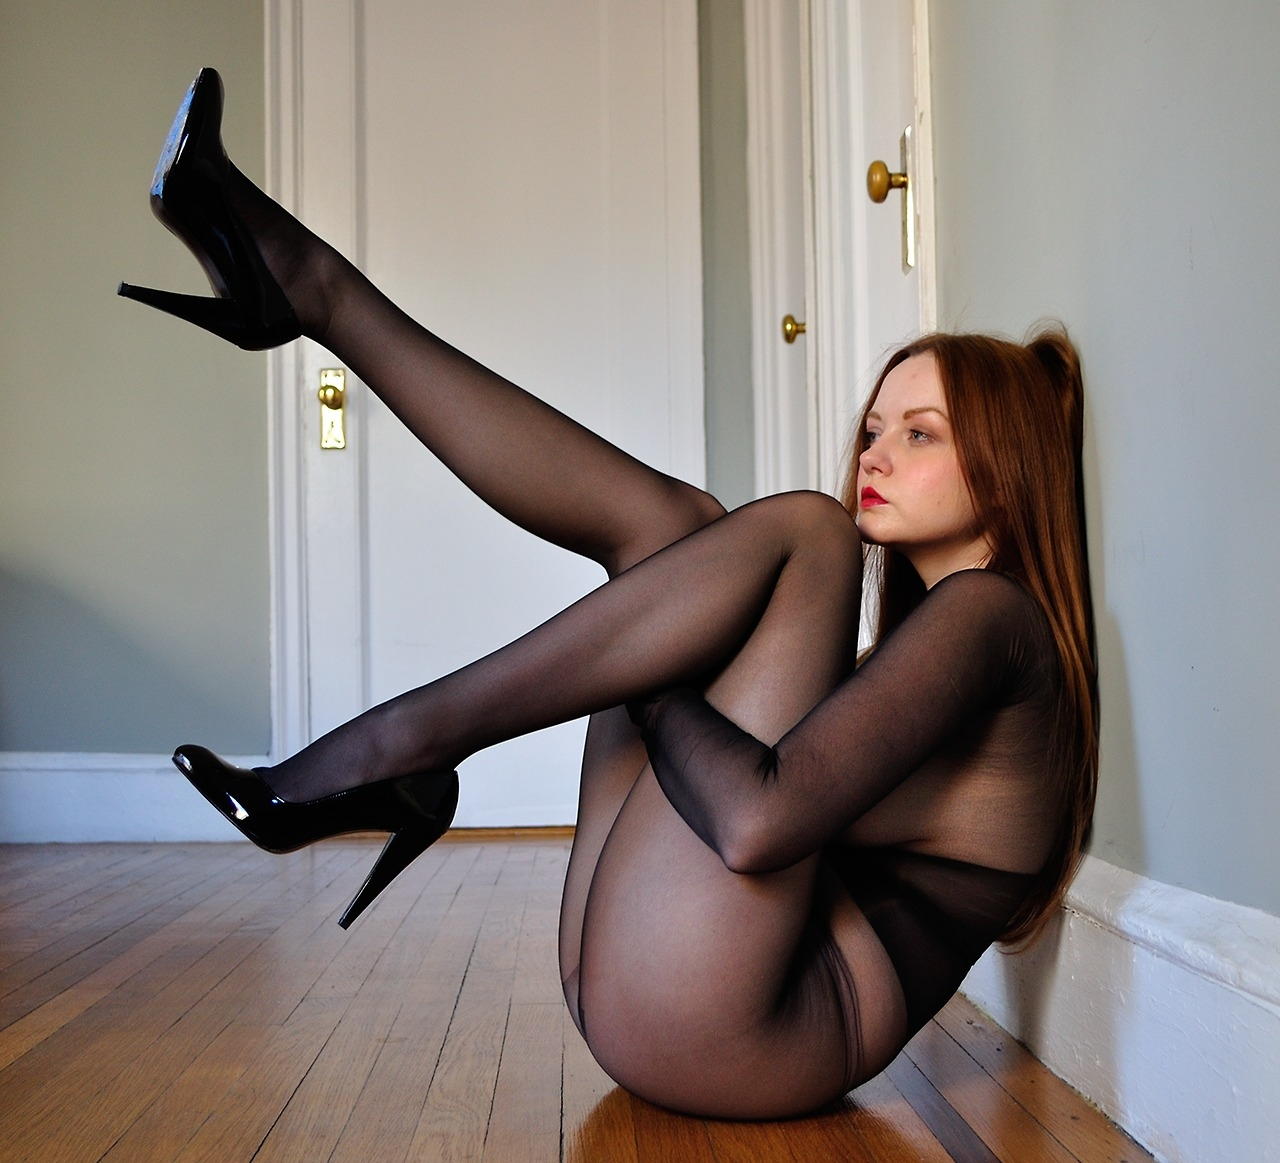 image Black nylons and online porn get mom hot and horny